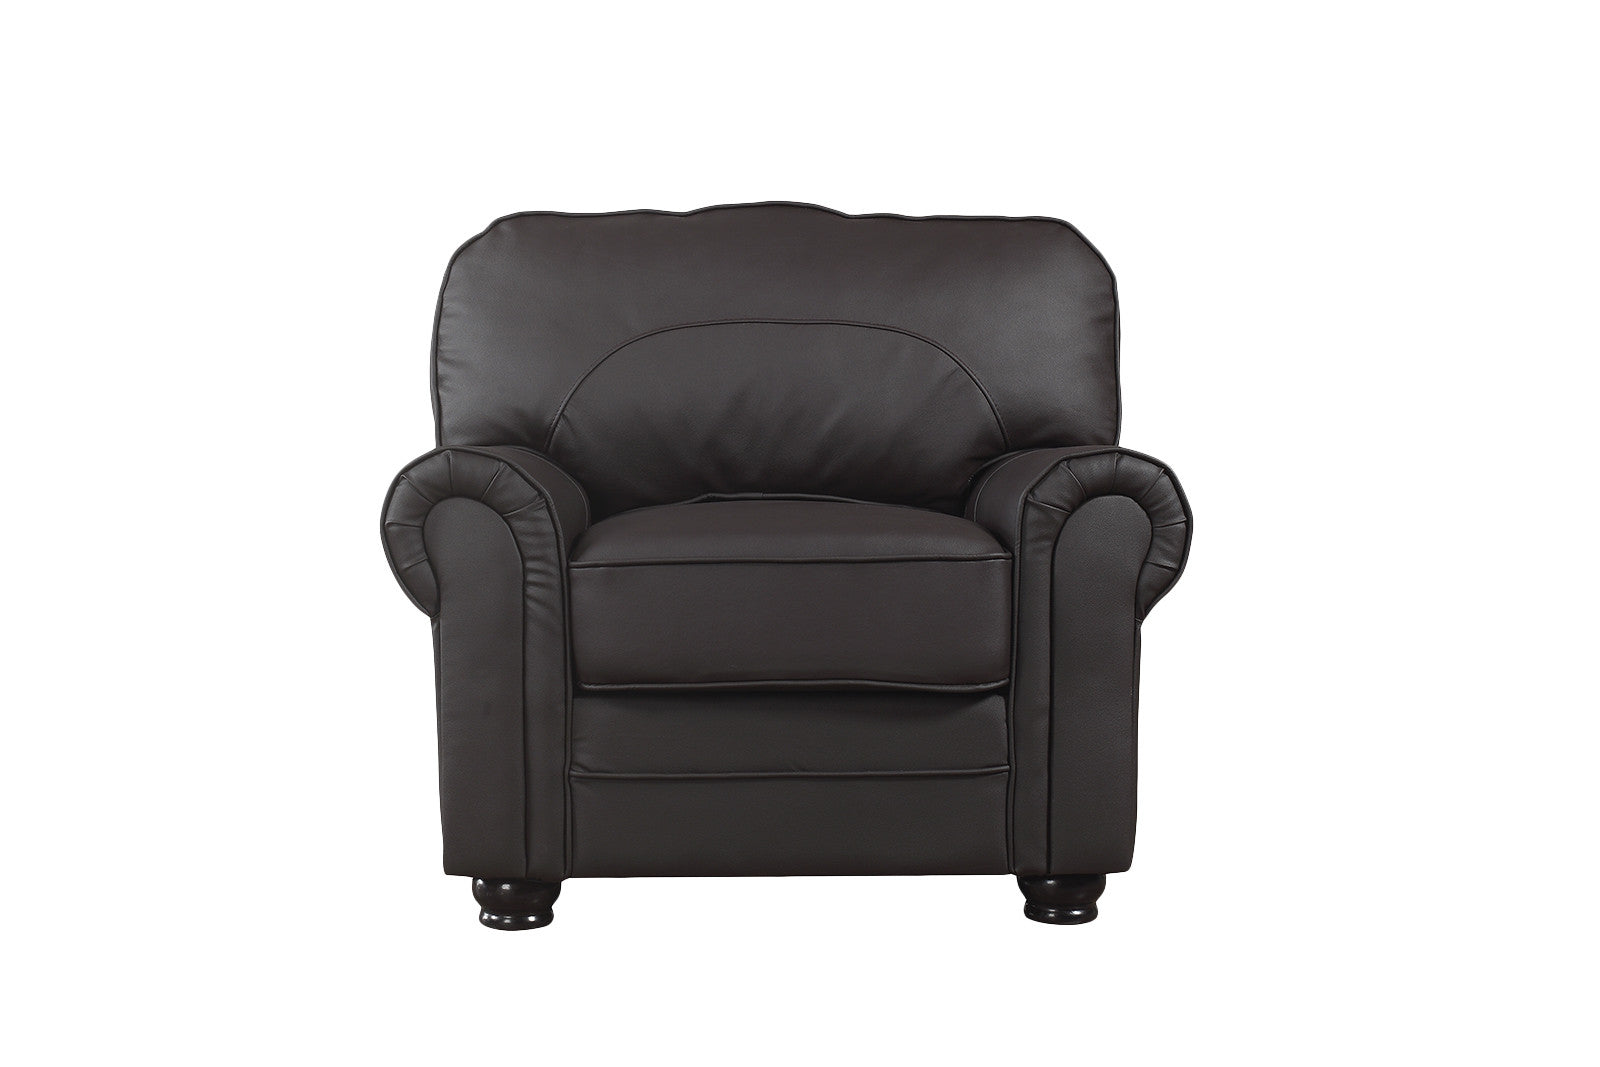 Plush Leather Armchair Image